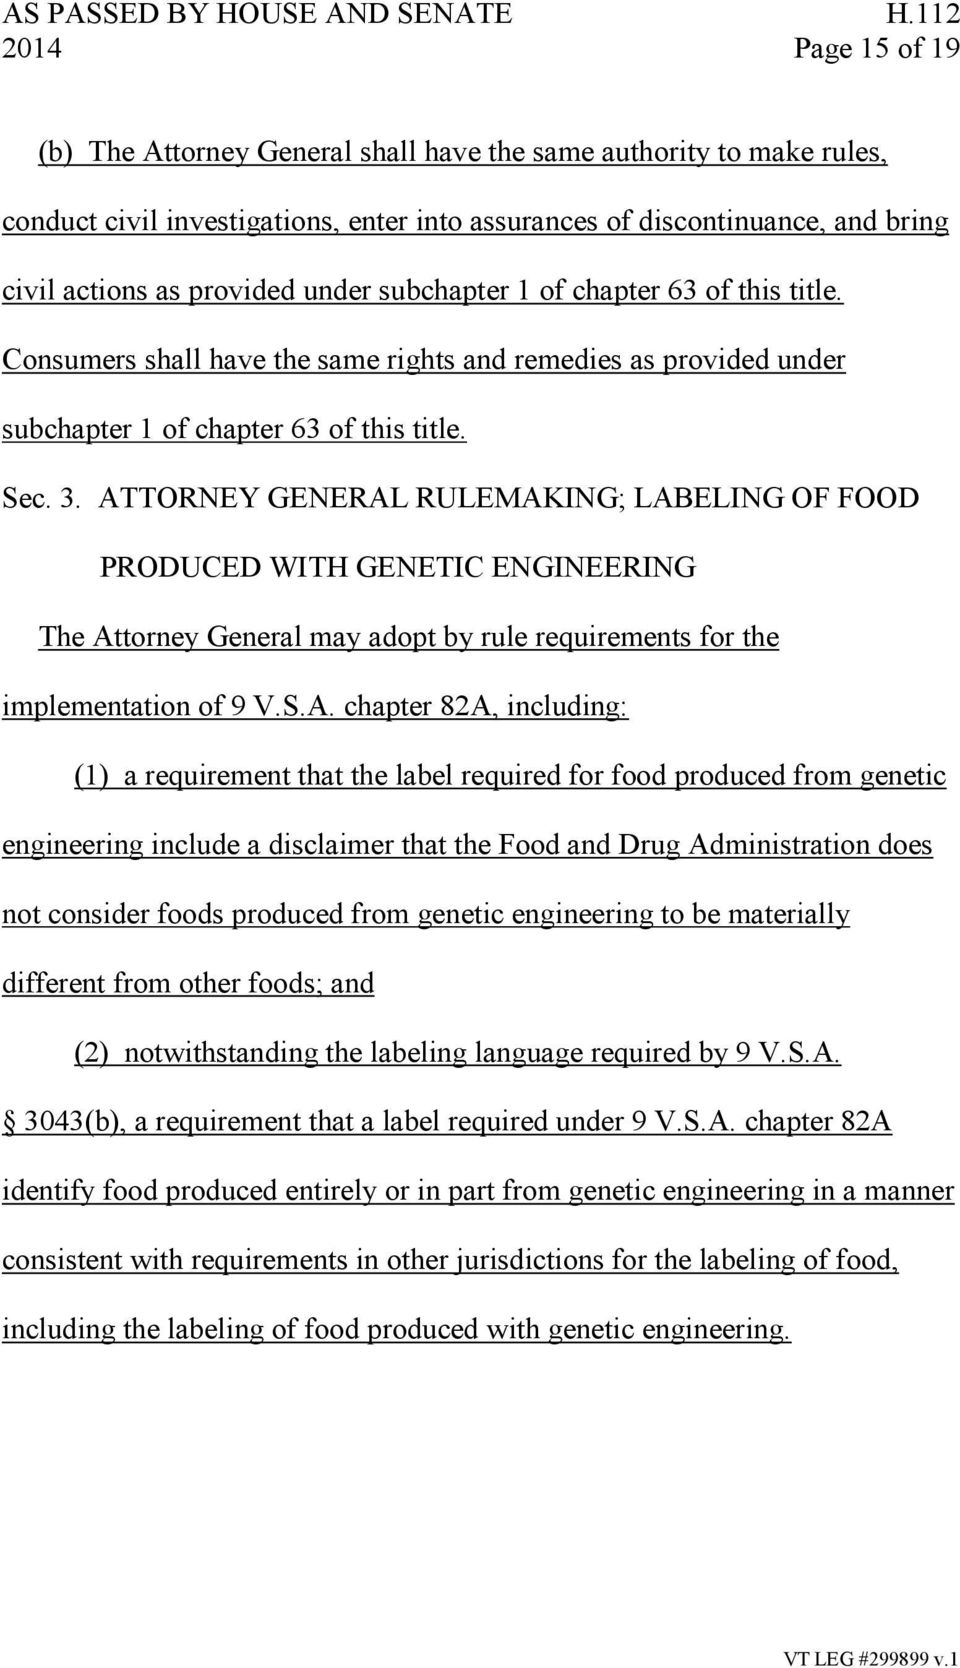 ATTORNEY GENERAL RULEMAKING; LABELING OF FOOD PRODUCED WITH GENETIC ENGINEERING The Attorney General may adopt by rule requirements for the implementation of 9 V.S.A. chapter 82A, including: (1) a